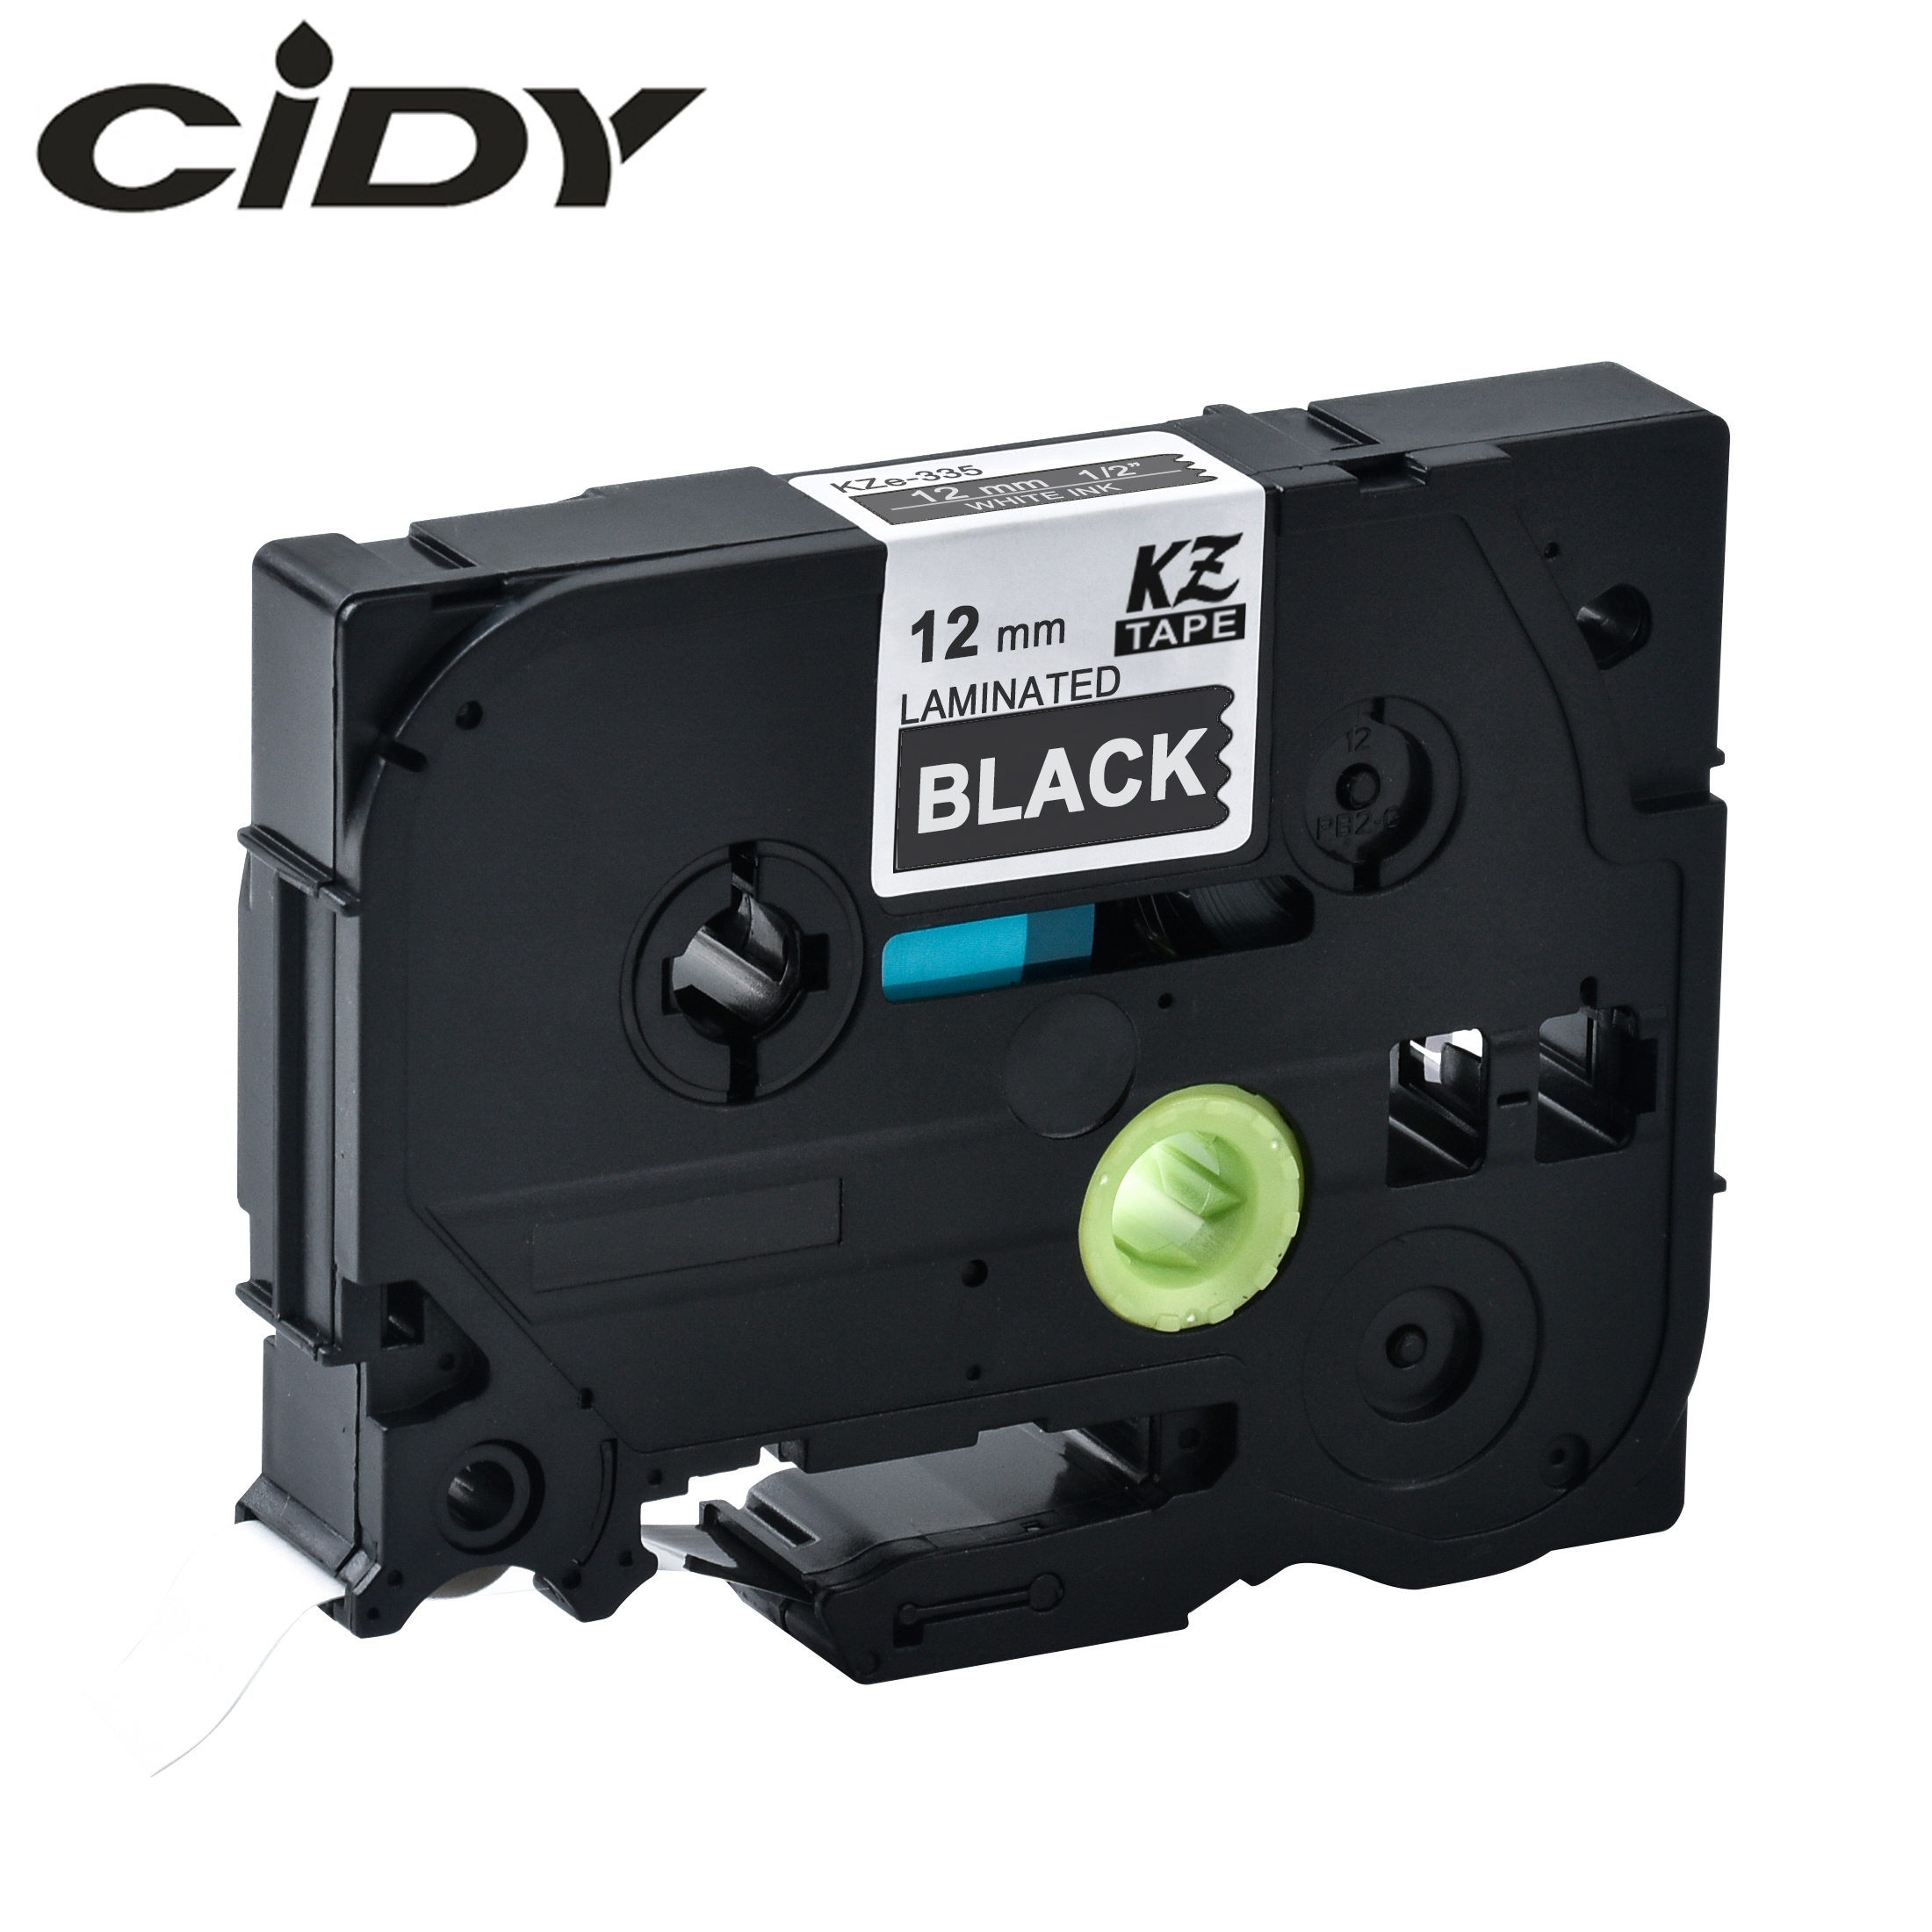 CIDY 1PCS Compatible TZe-335 TZE 335 TZE335 TZ 335 Tz335 White On Black  Laminated Label Tape For Label Printer Brother P-TOUCH